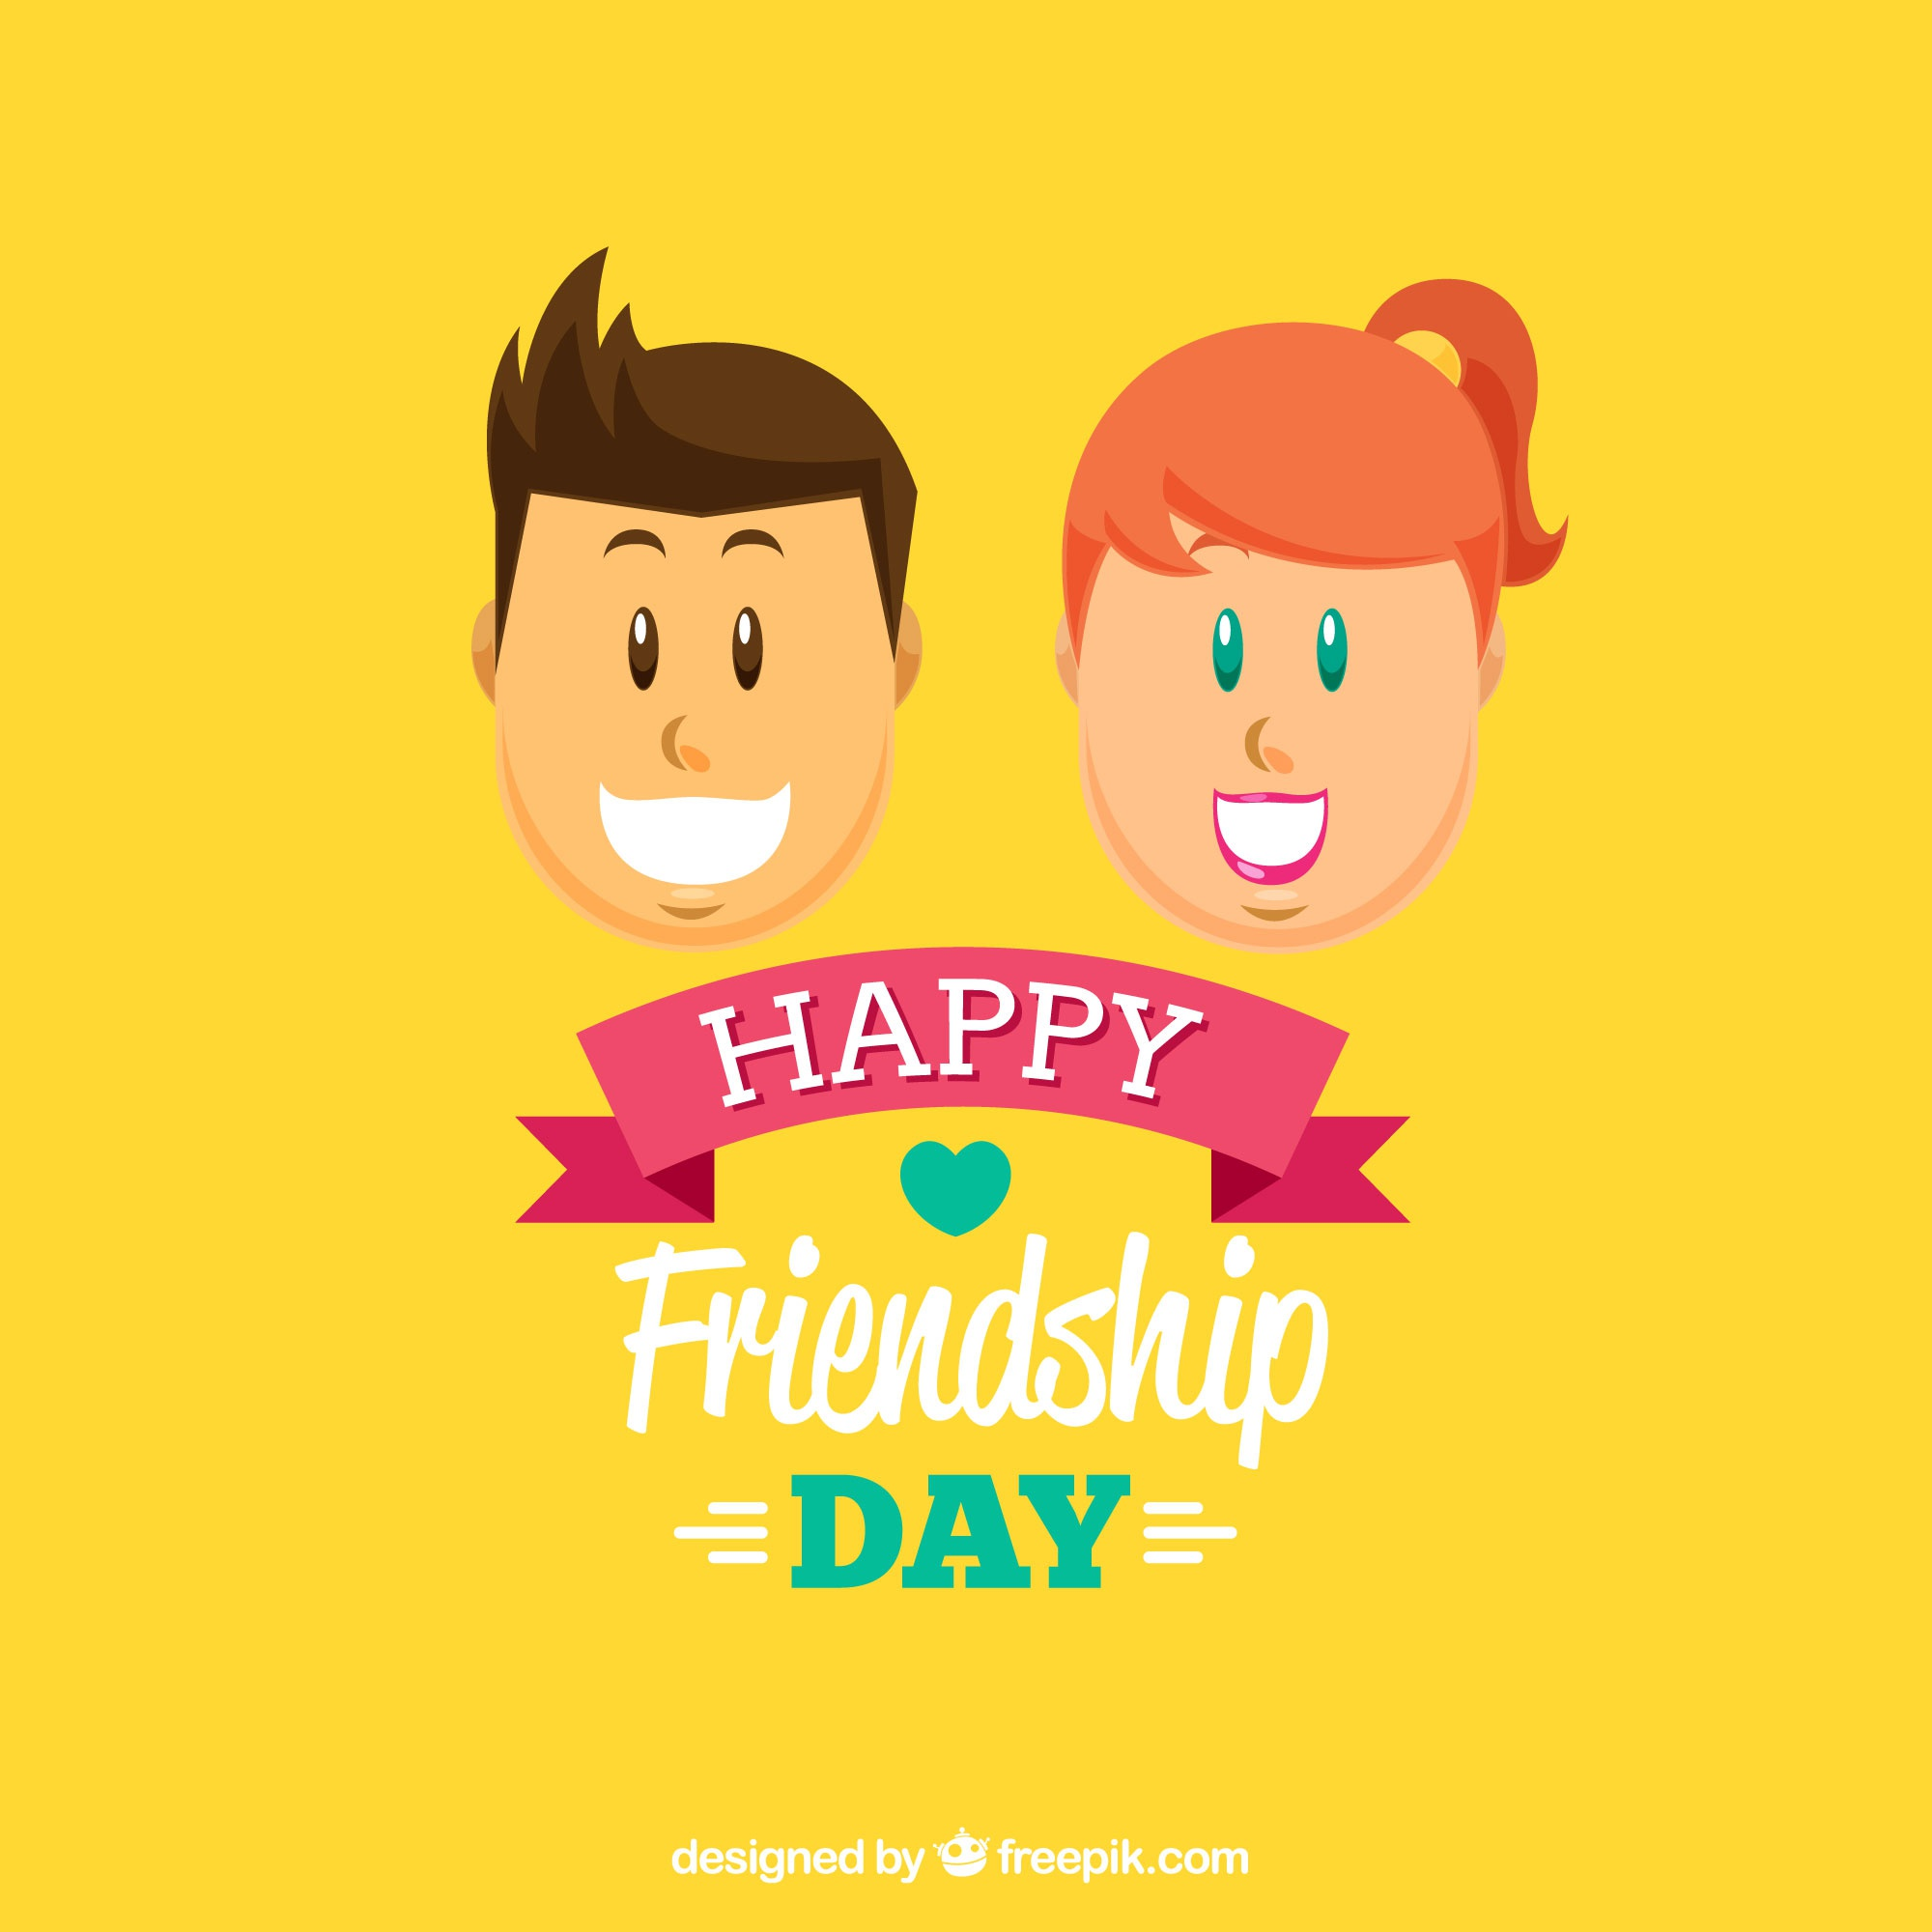 Friendship day background with man and woman characters